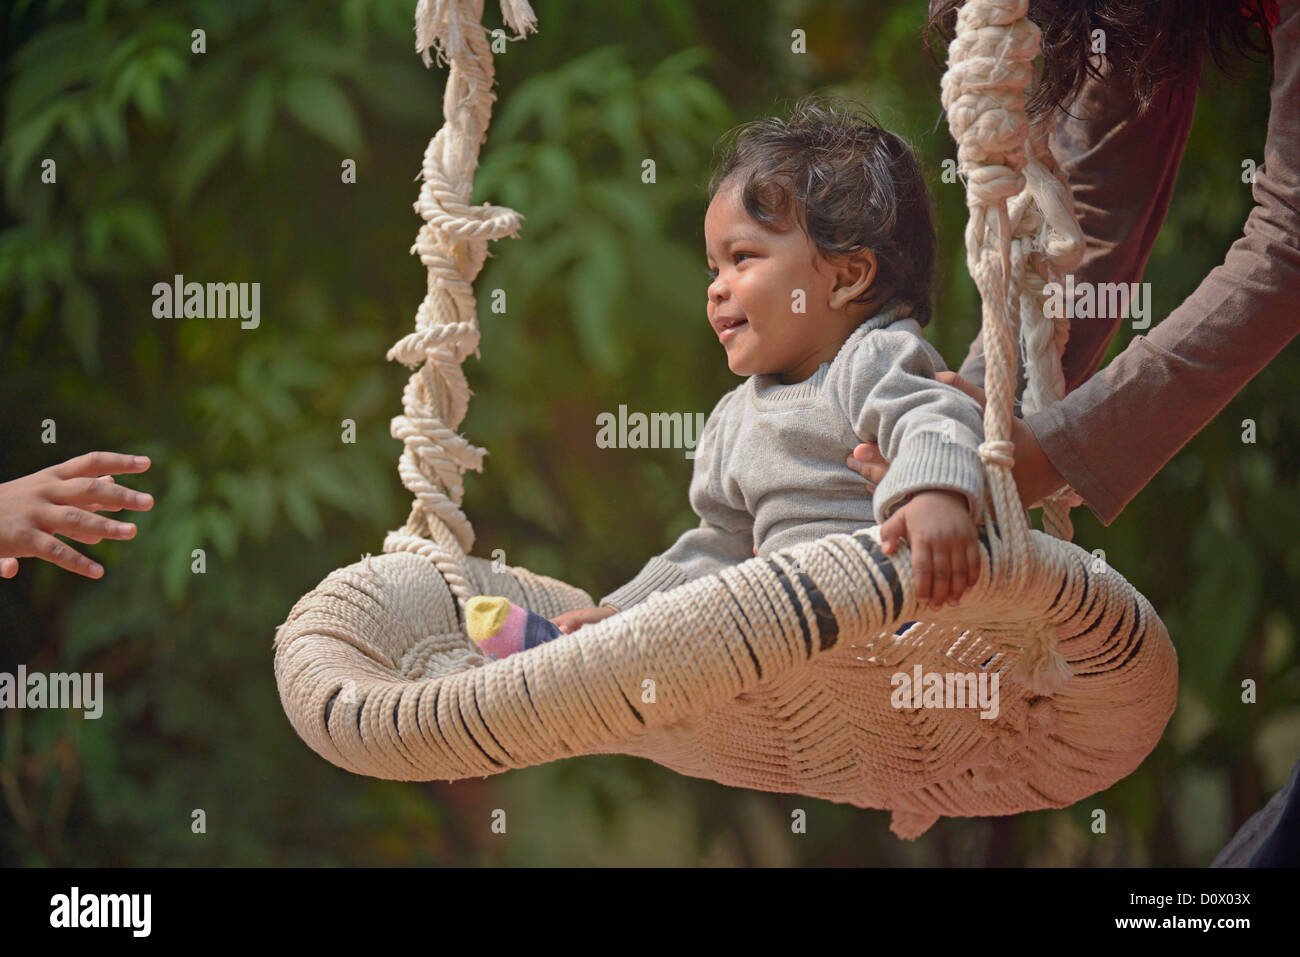 Cute south asian (Indian) baby girl playing on a swing Stock Photo ...